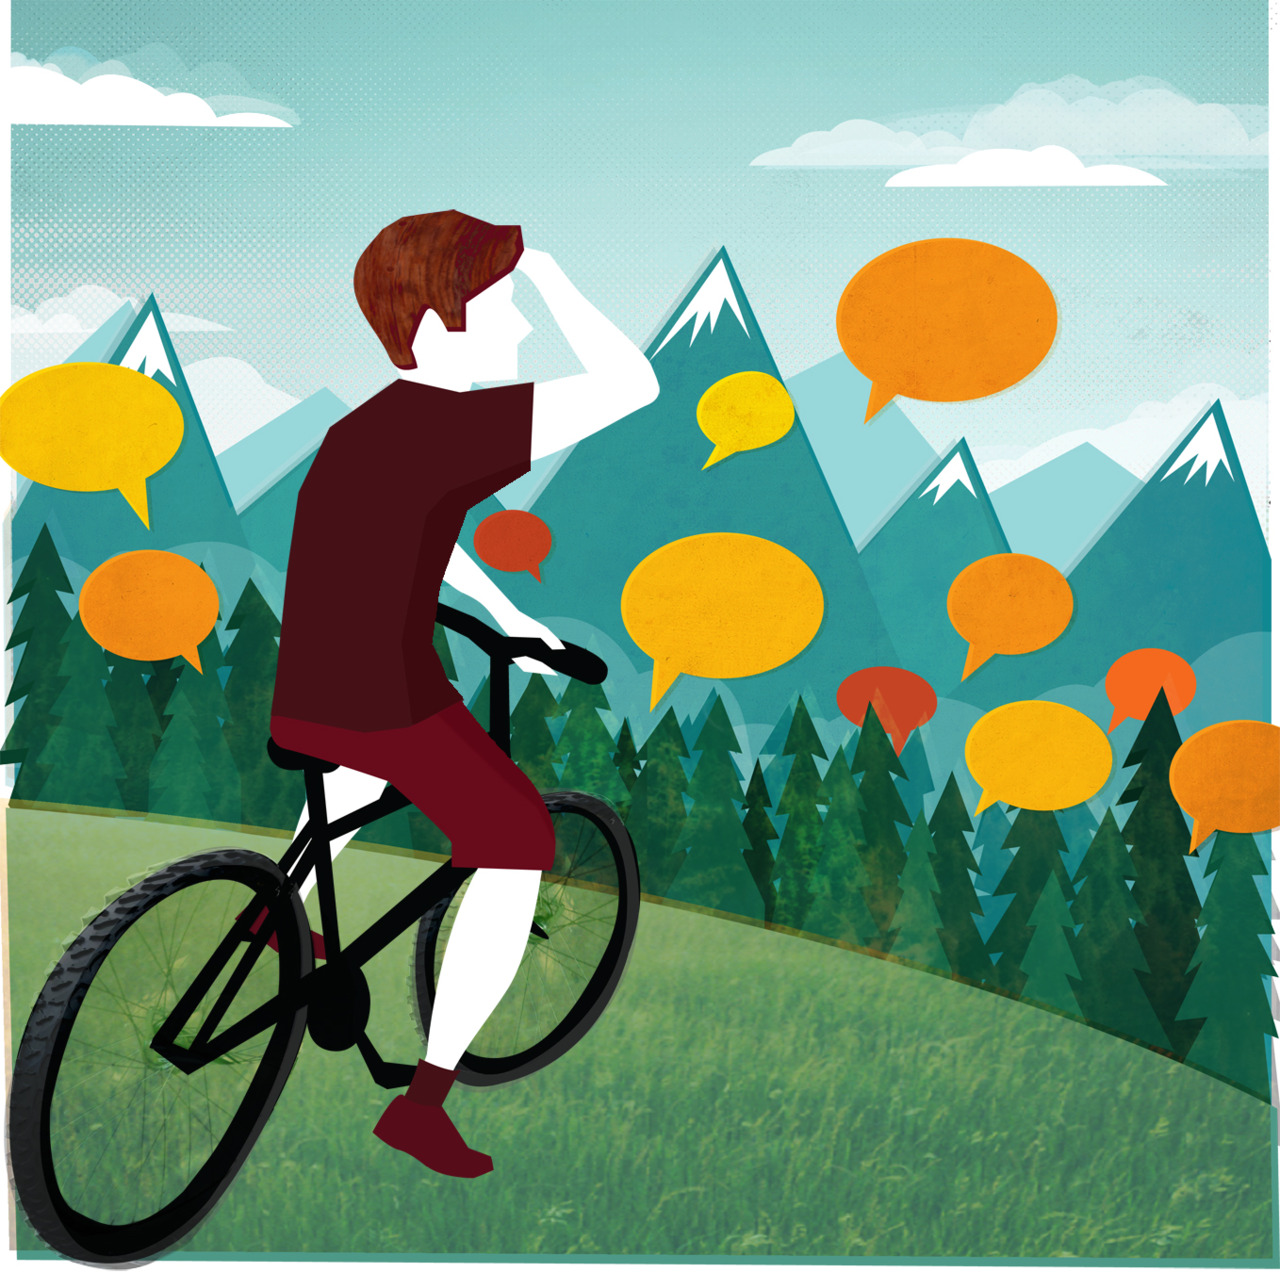 I was commissioned by the Canadian business magazine Profit to illustrate two articles for the March edition. The illustration above was to accompany an article about how companies are able to crowd source their own market research via social media platforms. A mountain bike company featured in the article is seen here looking out over conservations that they are able to access and utilise via social media. The illustration below is for a piece about rewarding sales staff with bonuses which are dependent on their achievements.